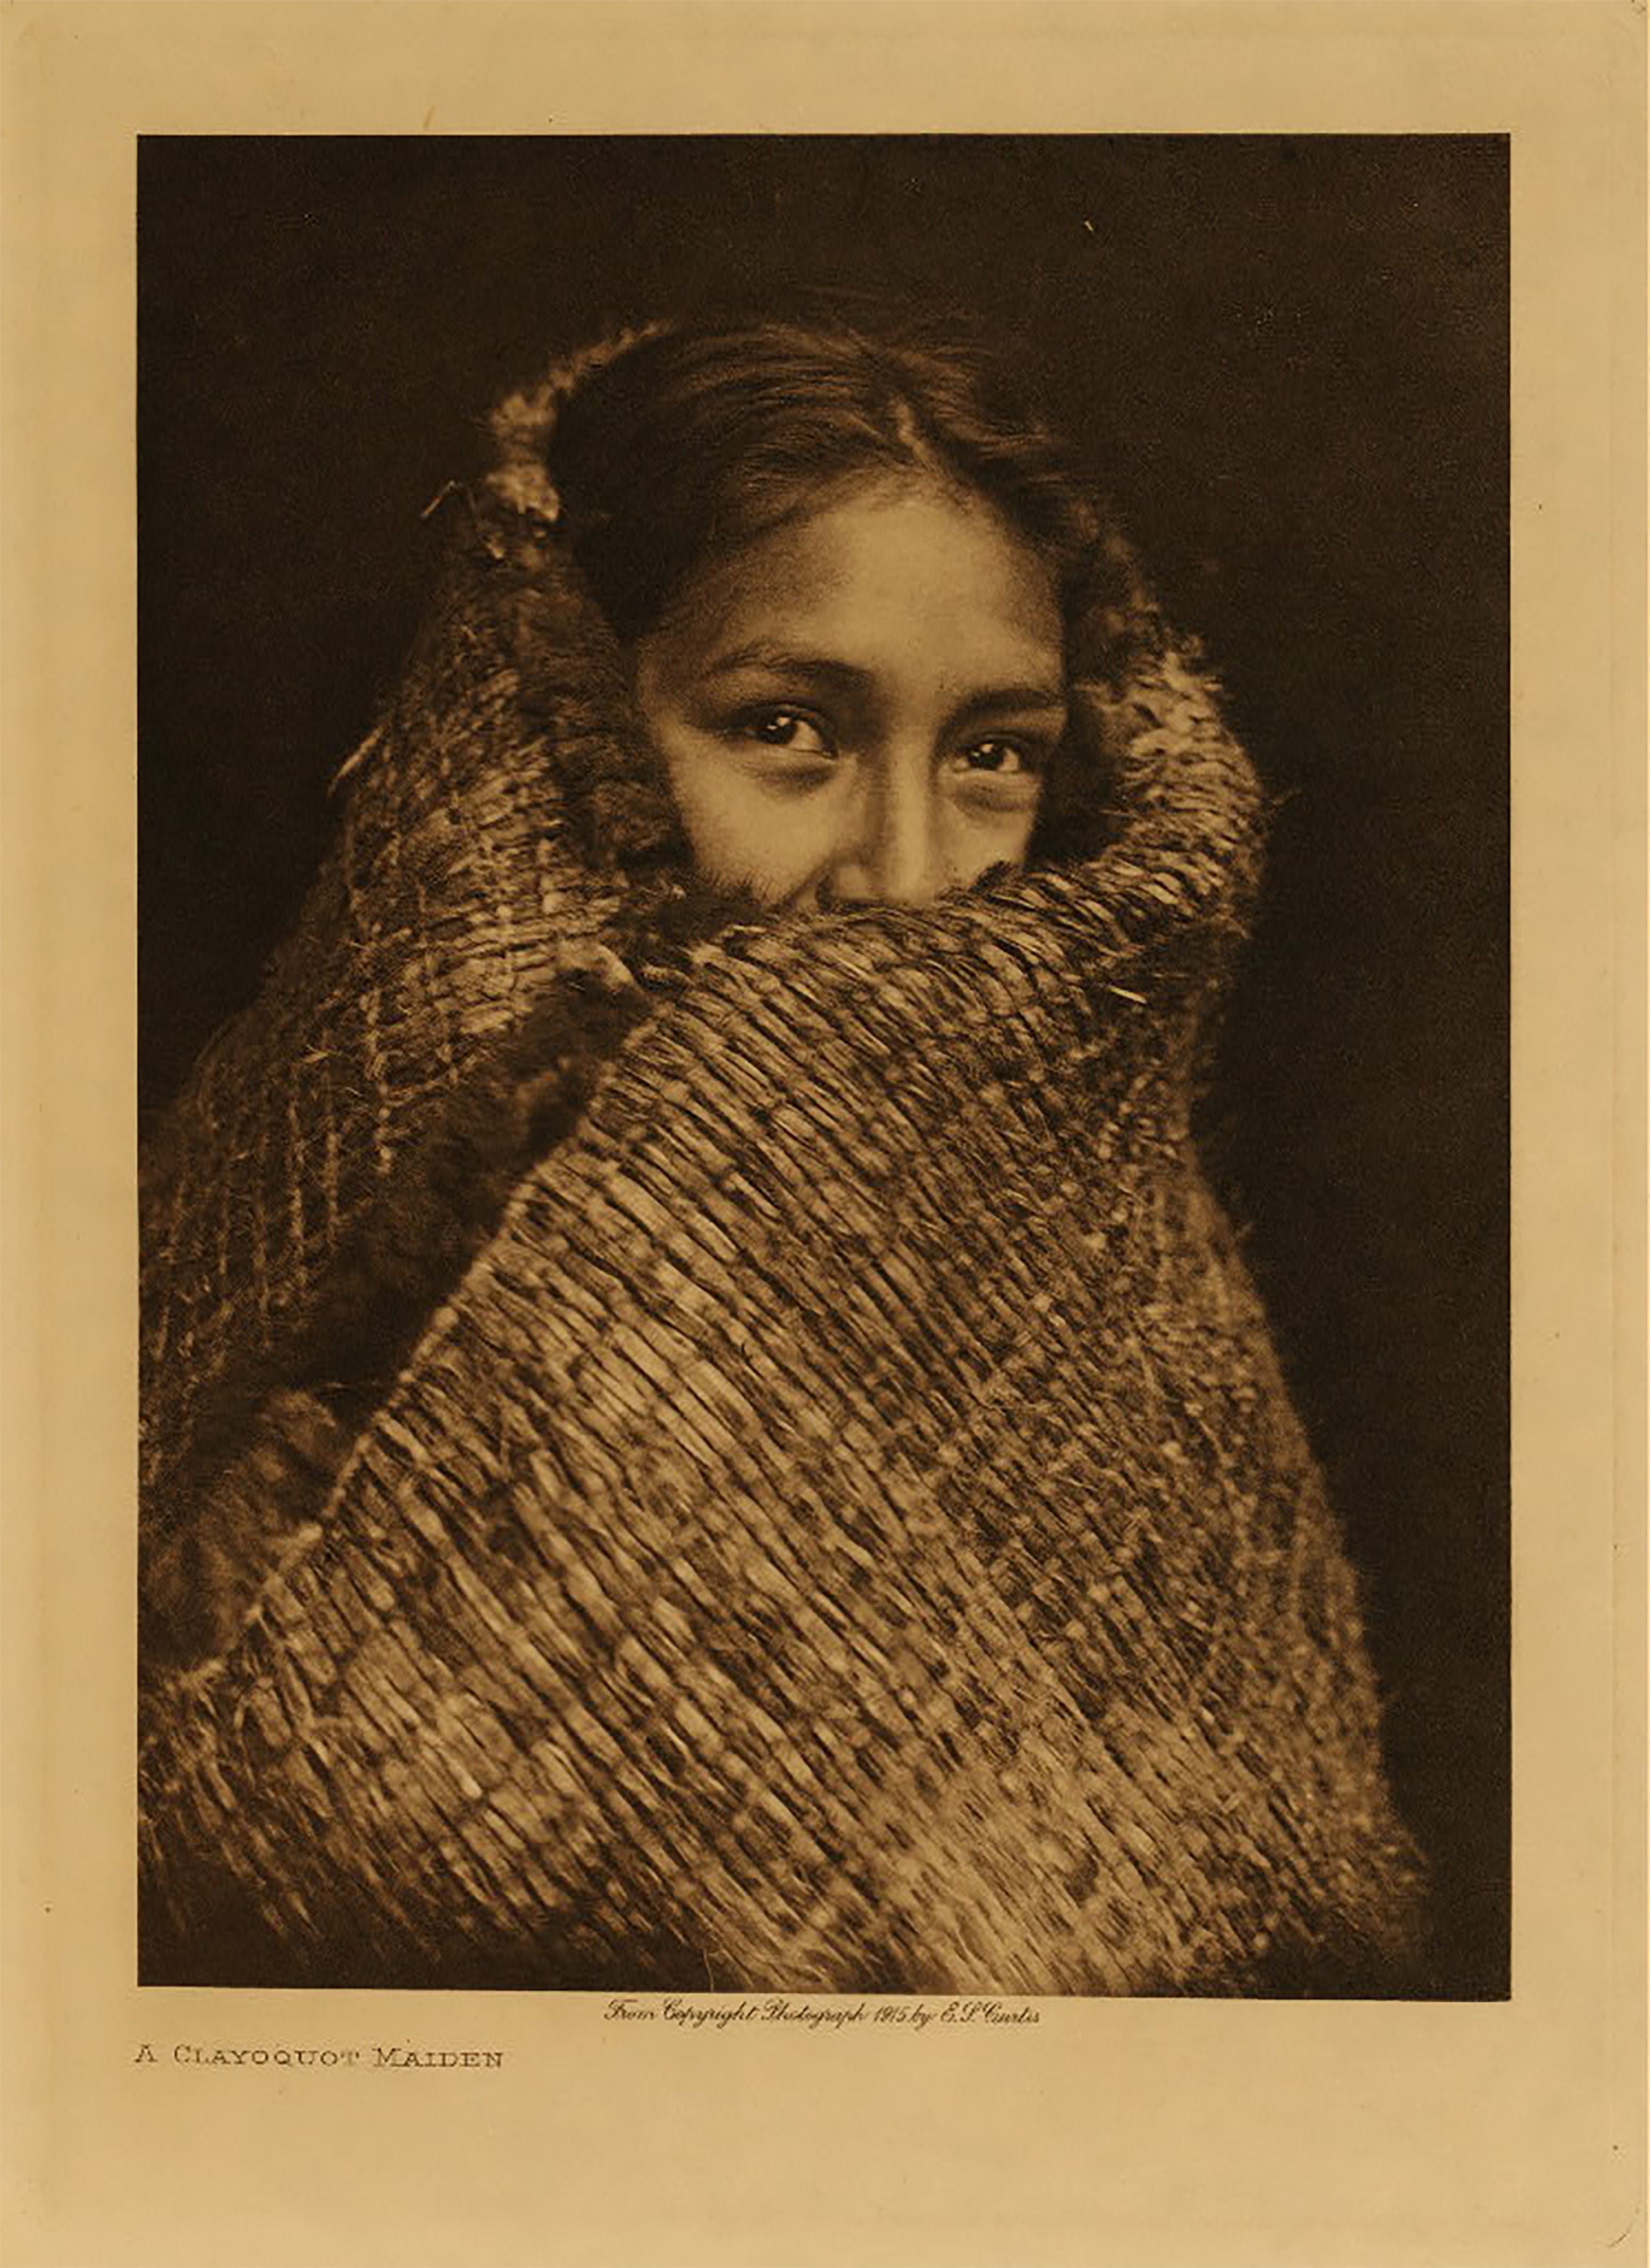 A Clayoquot Maiden, Edward S. Curtis